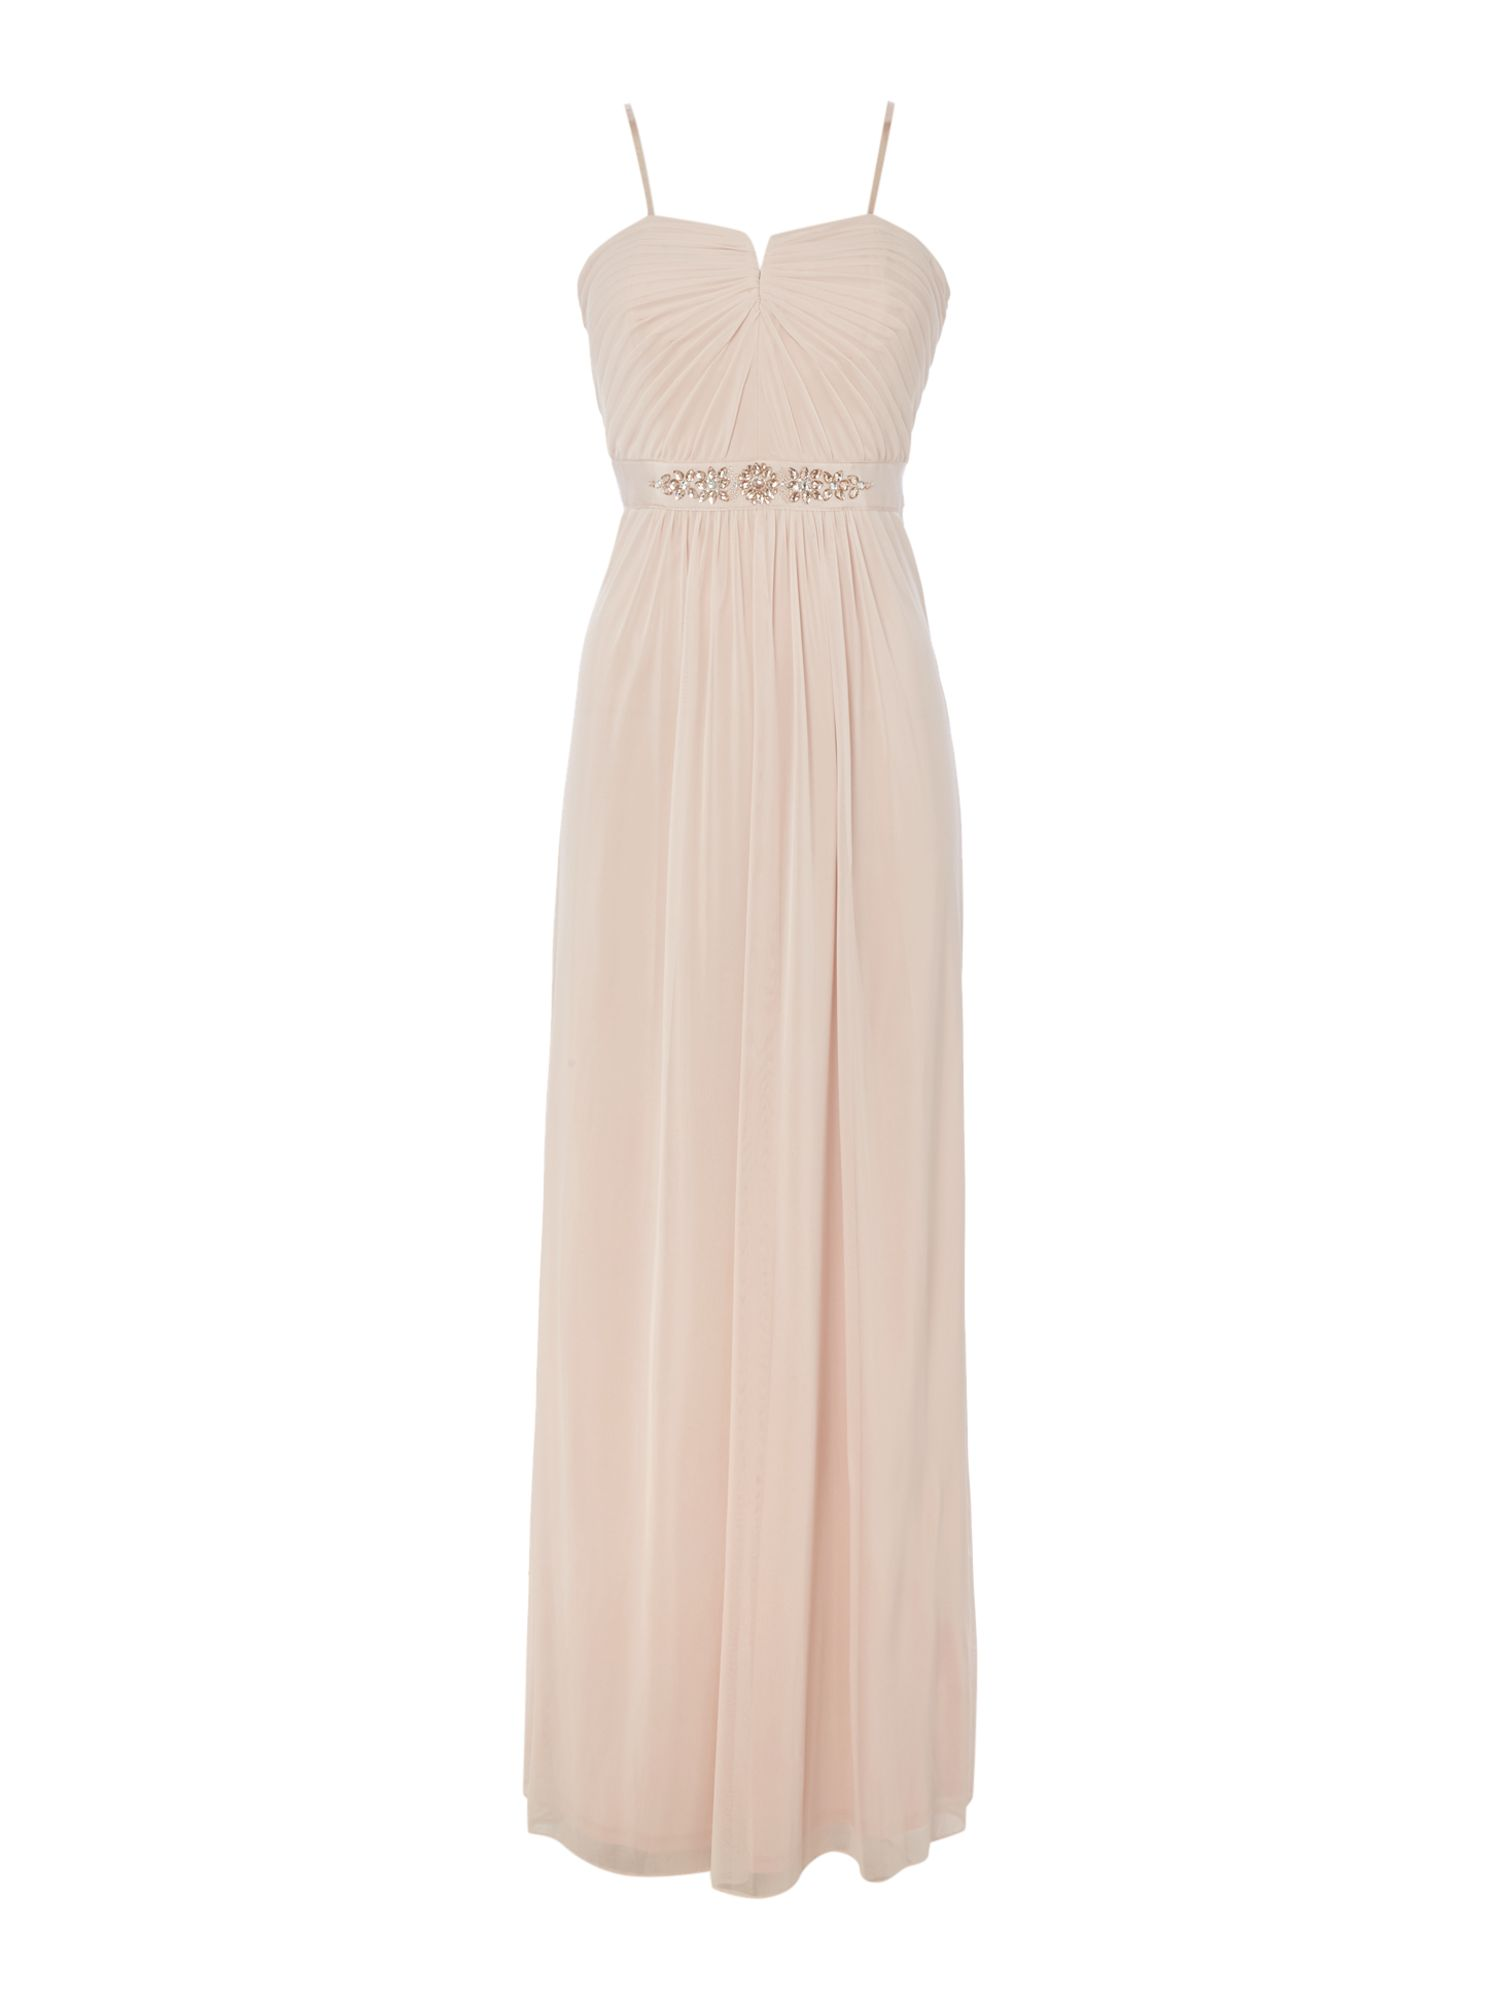 Adrianna Papell Strapless Beaded Waist Tulle Gown, Pink